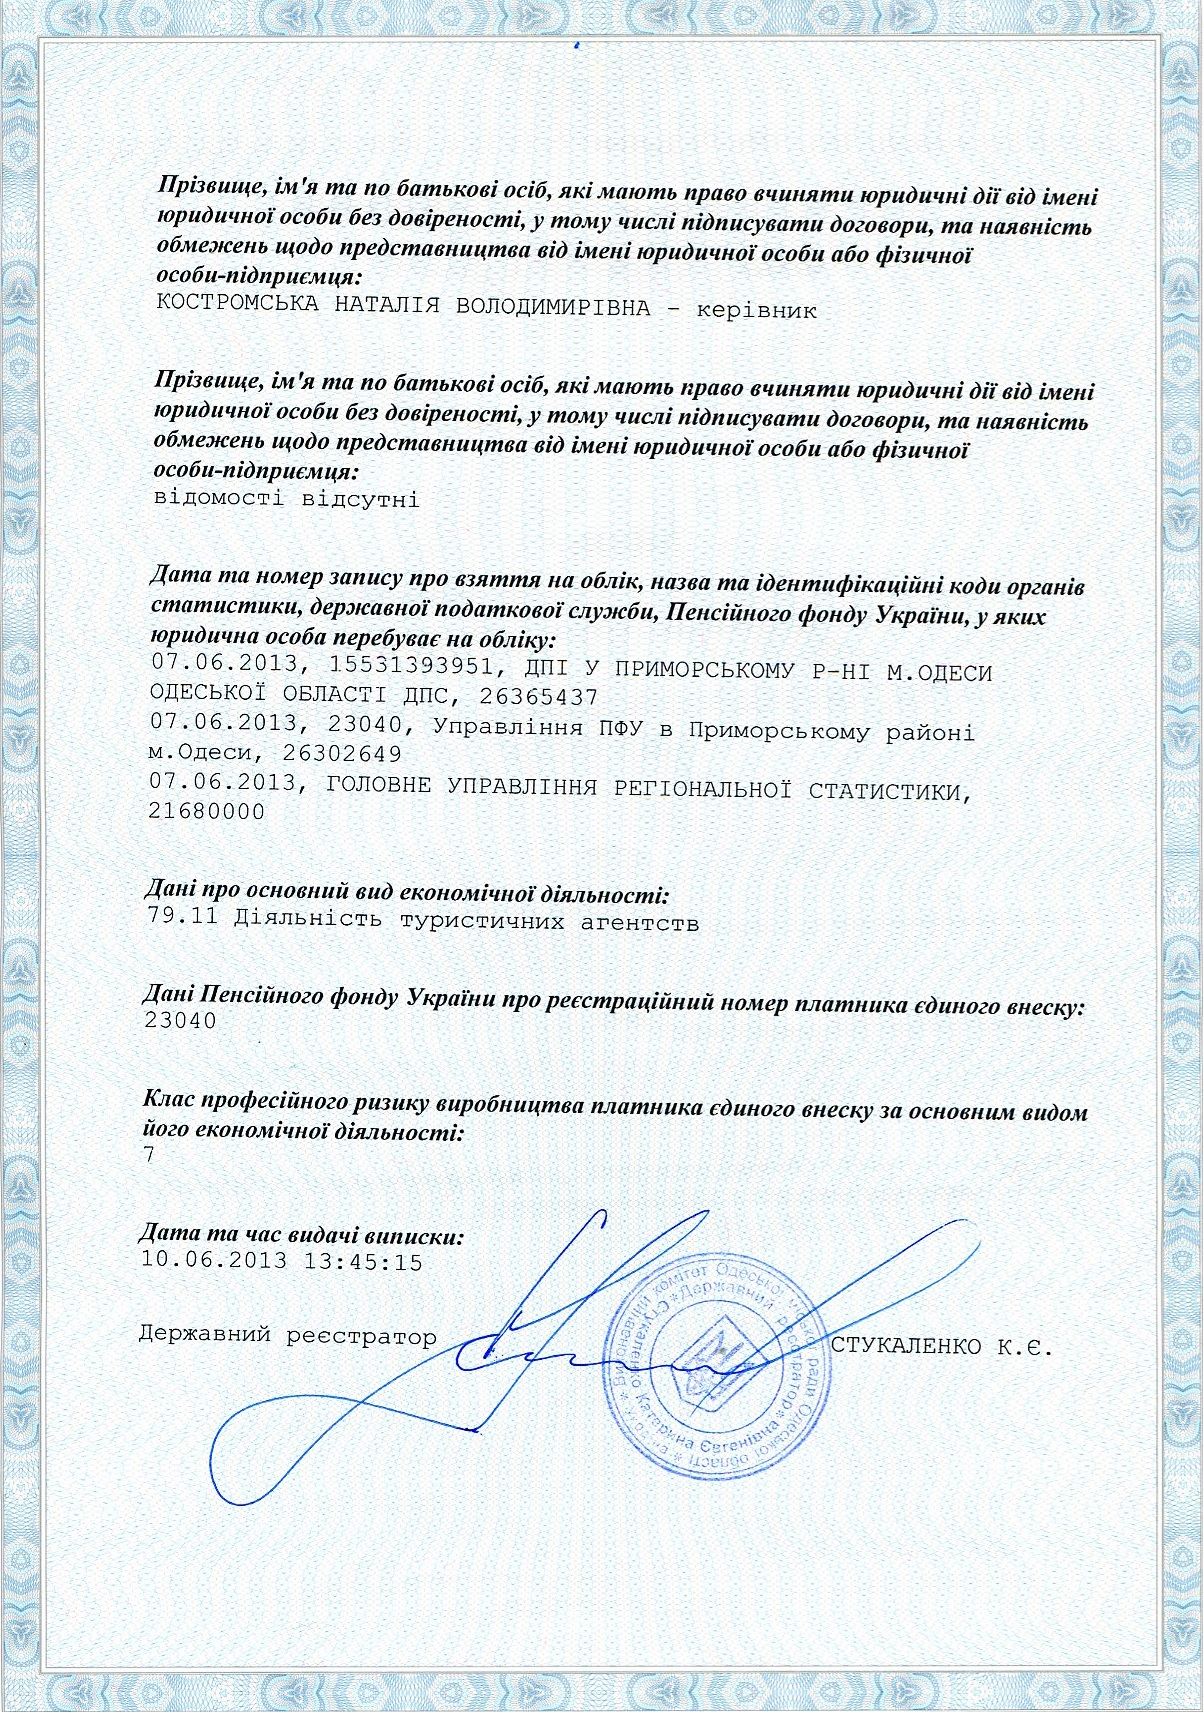 AviaNova registration certificate back